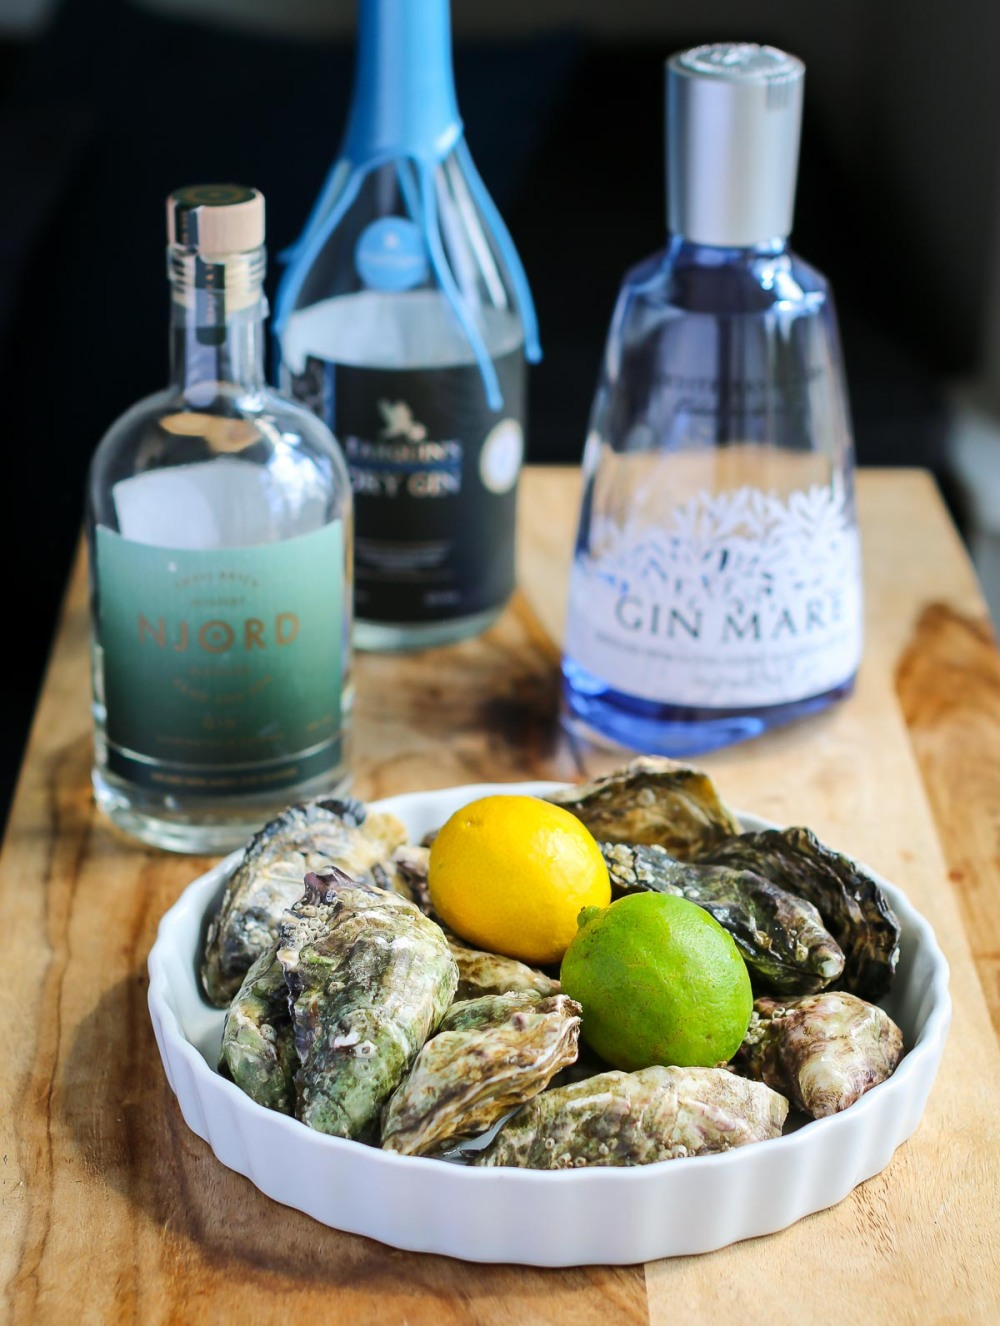 Njord Gin Sand and Sea, Tarquin's Gin, Gin Mare og en røvfuld østers. Photo by Michael Sperling.